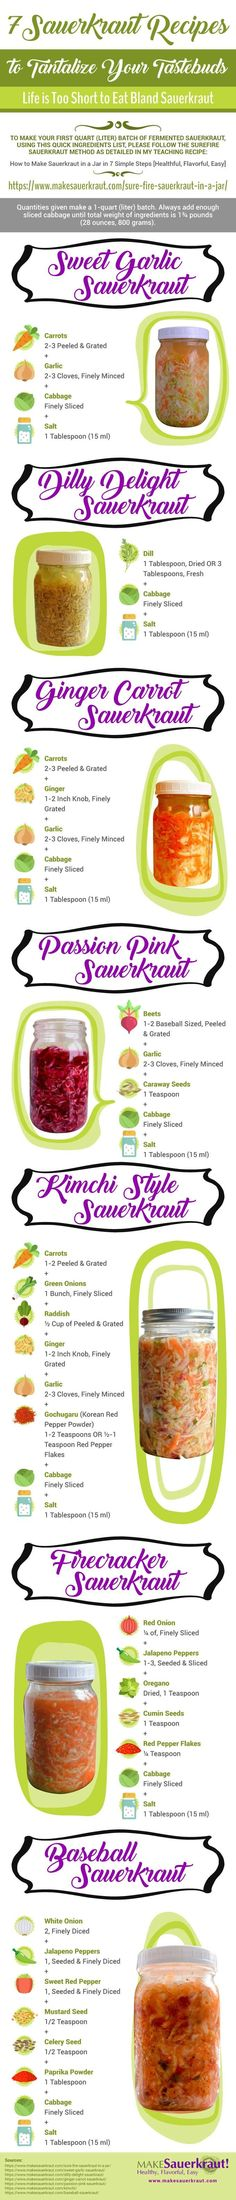 Colorful infographic and cheat sheet for a set of sauerkraut recipes that are delicious, easy to mak Fermented Cabbage, Fermented Foods, Sauerkraut Recipes, Thing 1, Winter Food, Winter Meals, Baseball, Paleo Diet, Keto